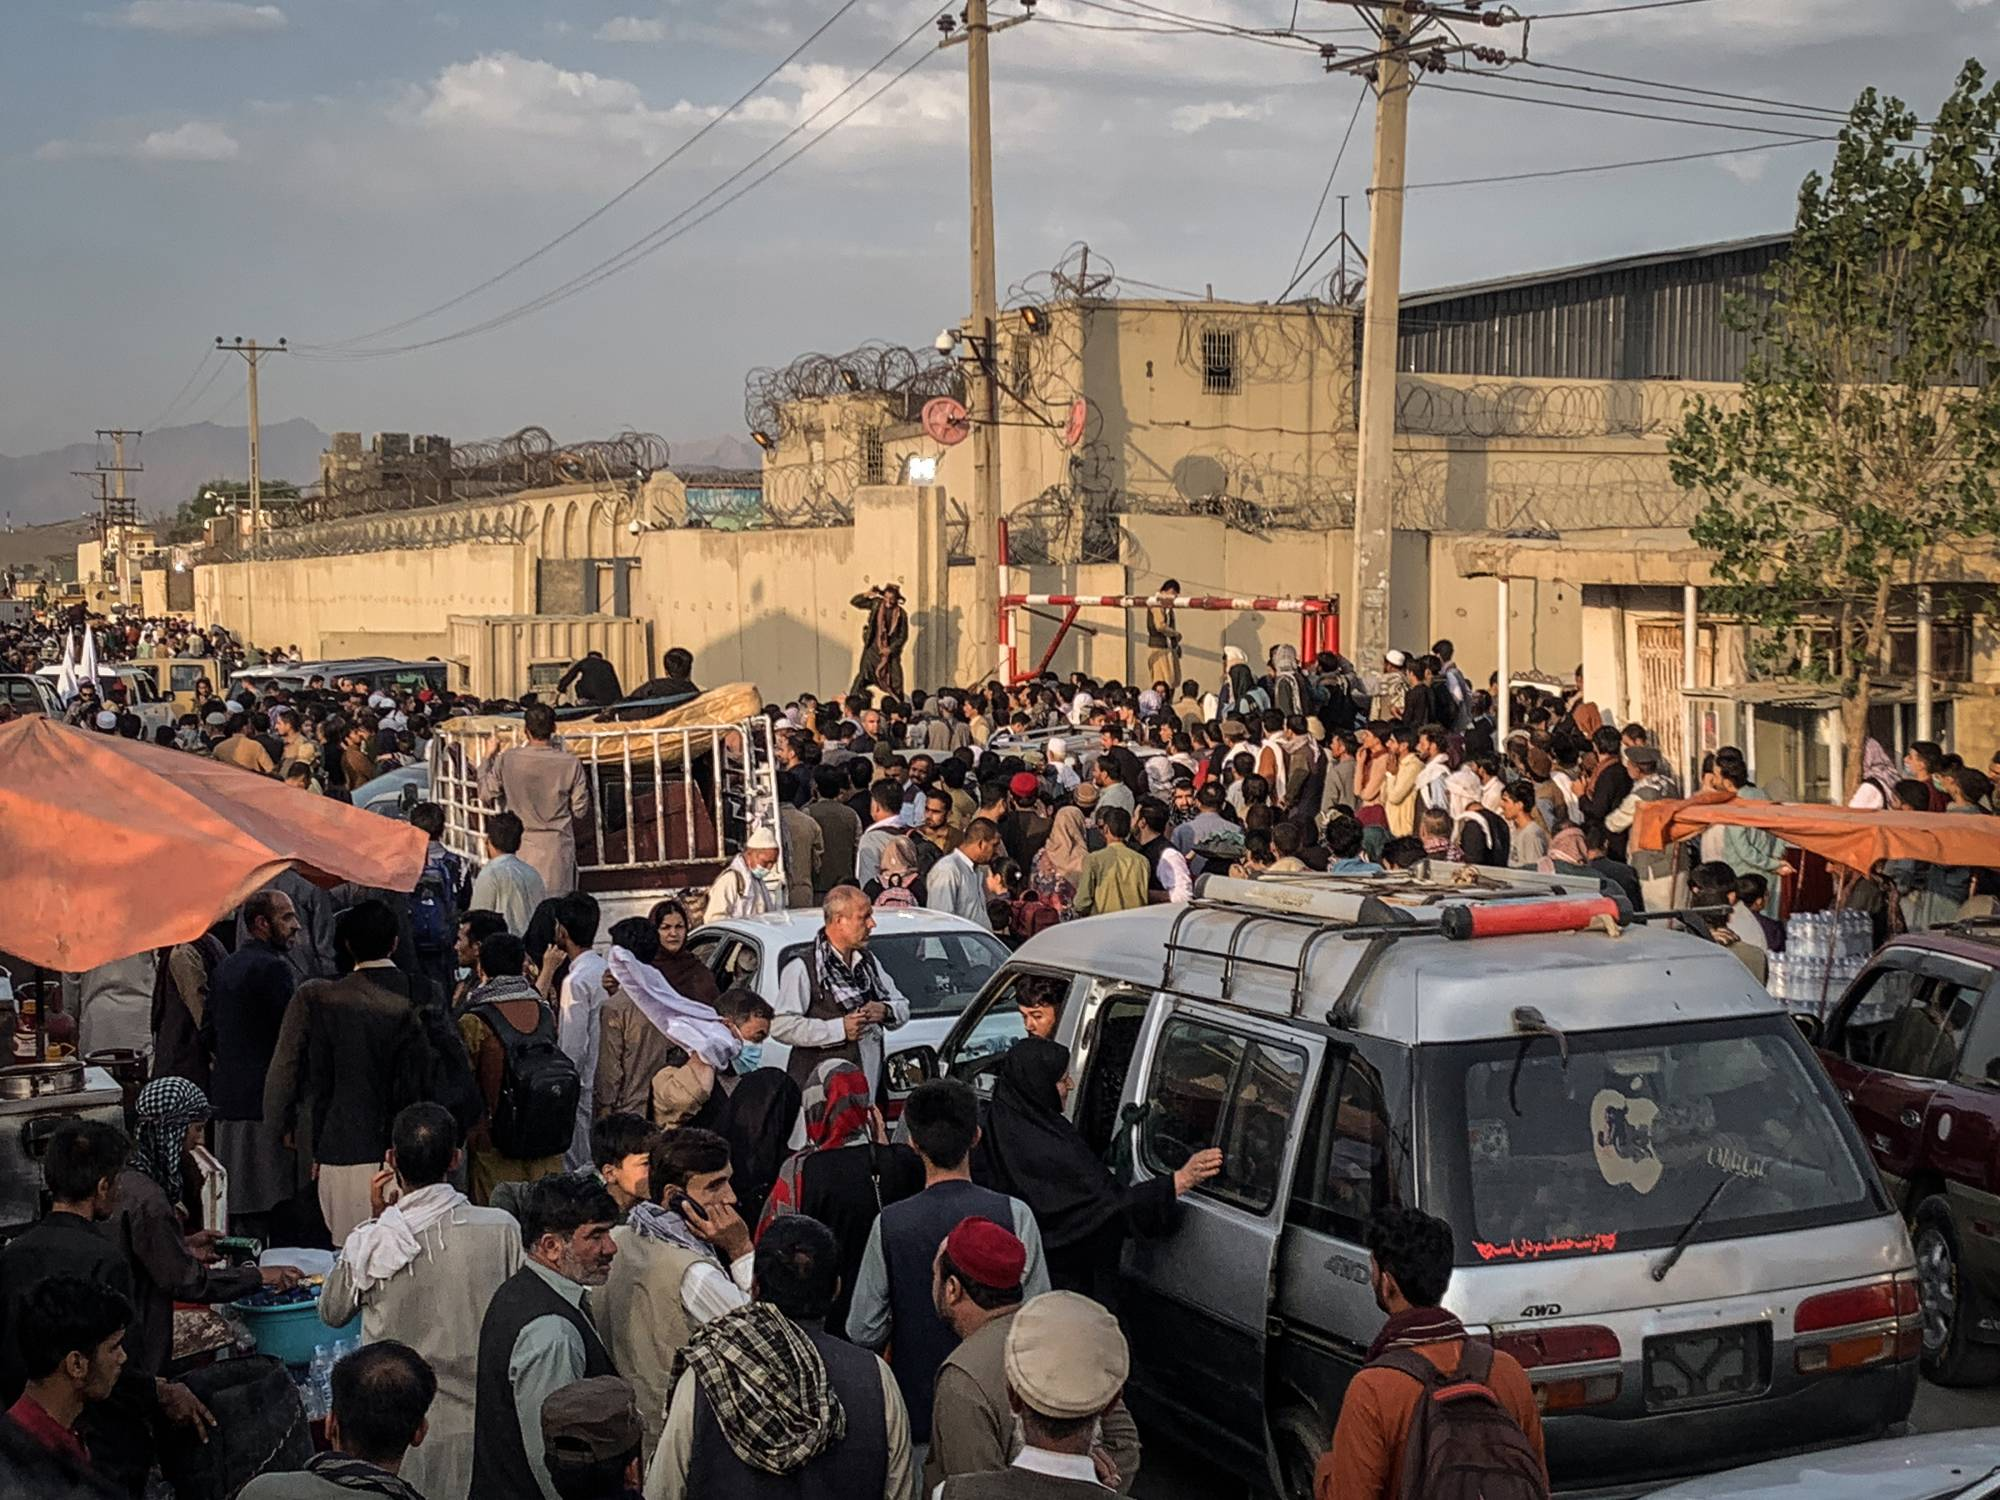 People gather near the airport in Kabul on Saturday.  | JIM HUYLEBROEK / THE NEW YORK TIMES